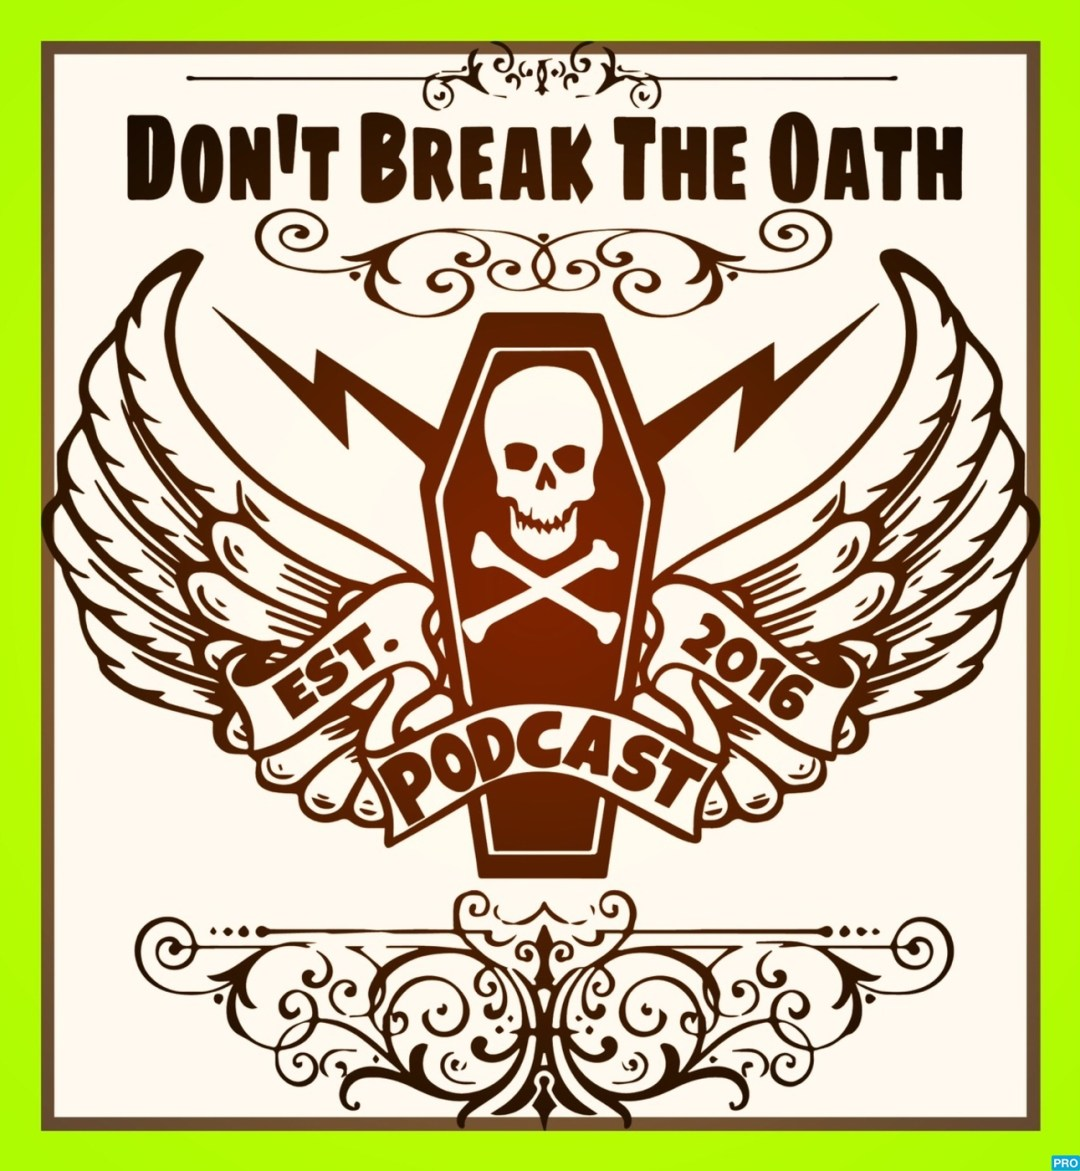 Don't break the oath